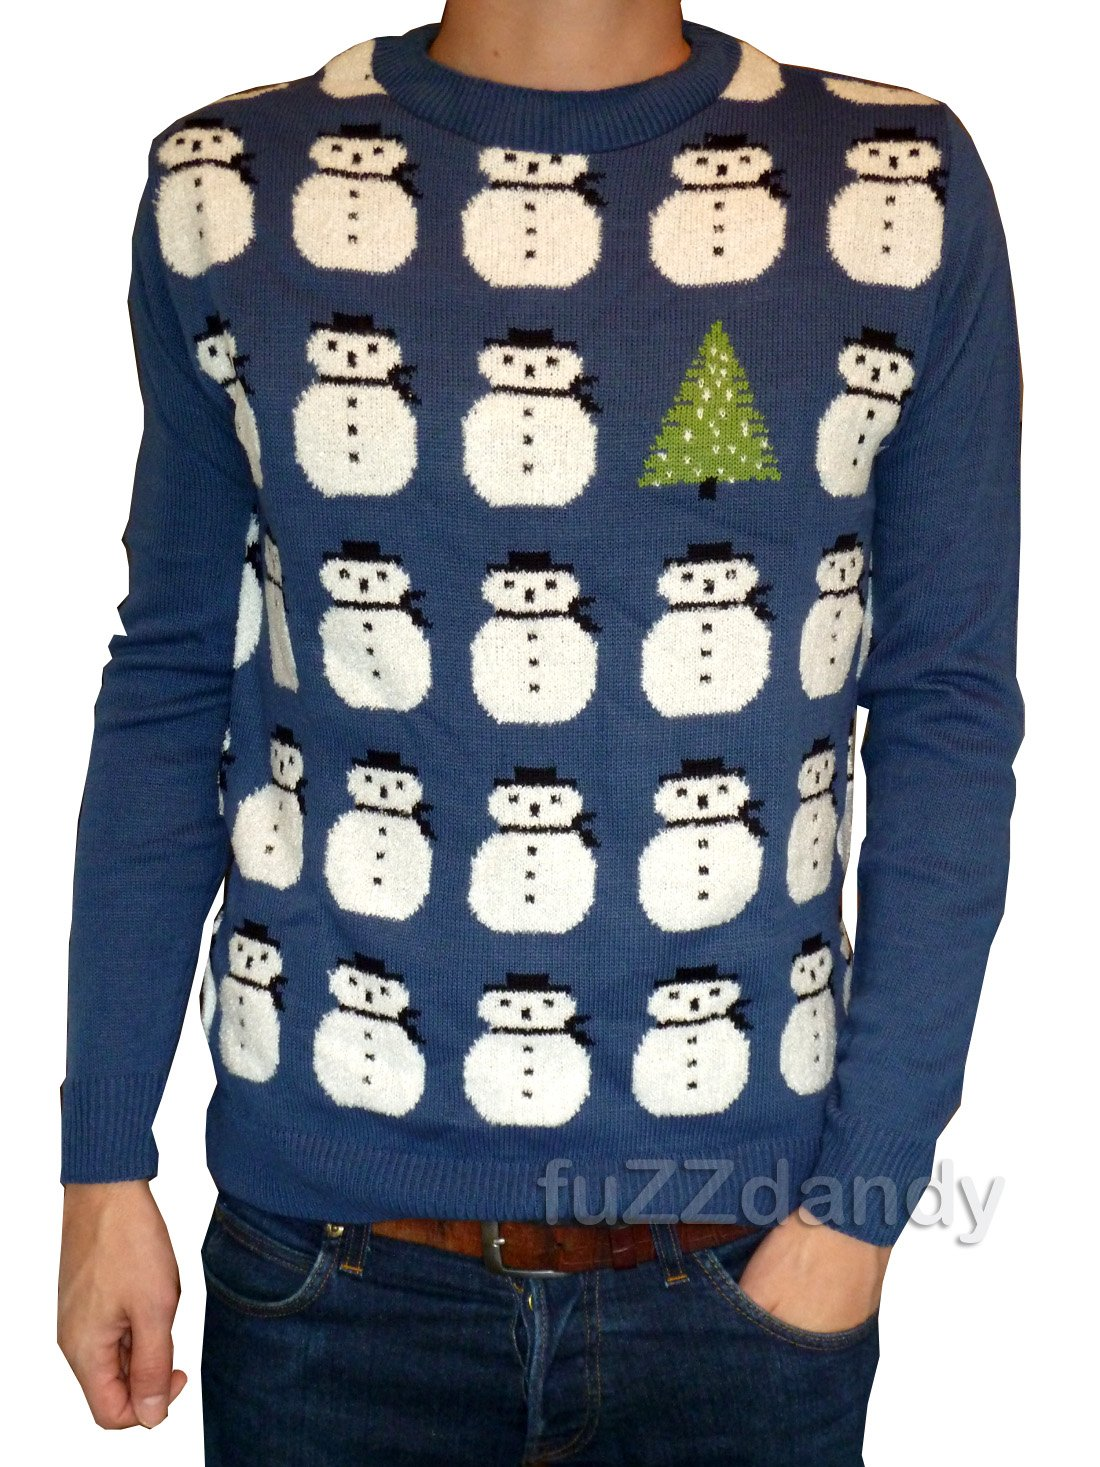 Snowman Christmas Jumper (Red or Blue)